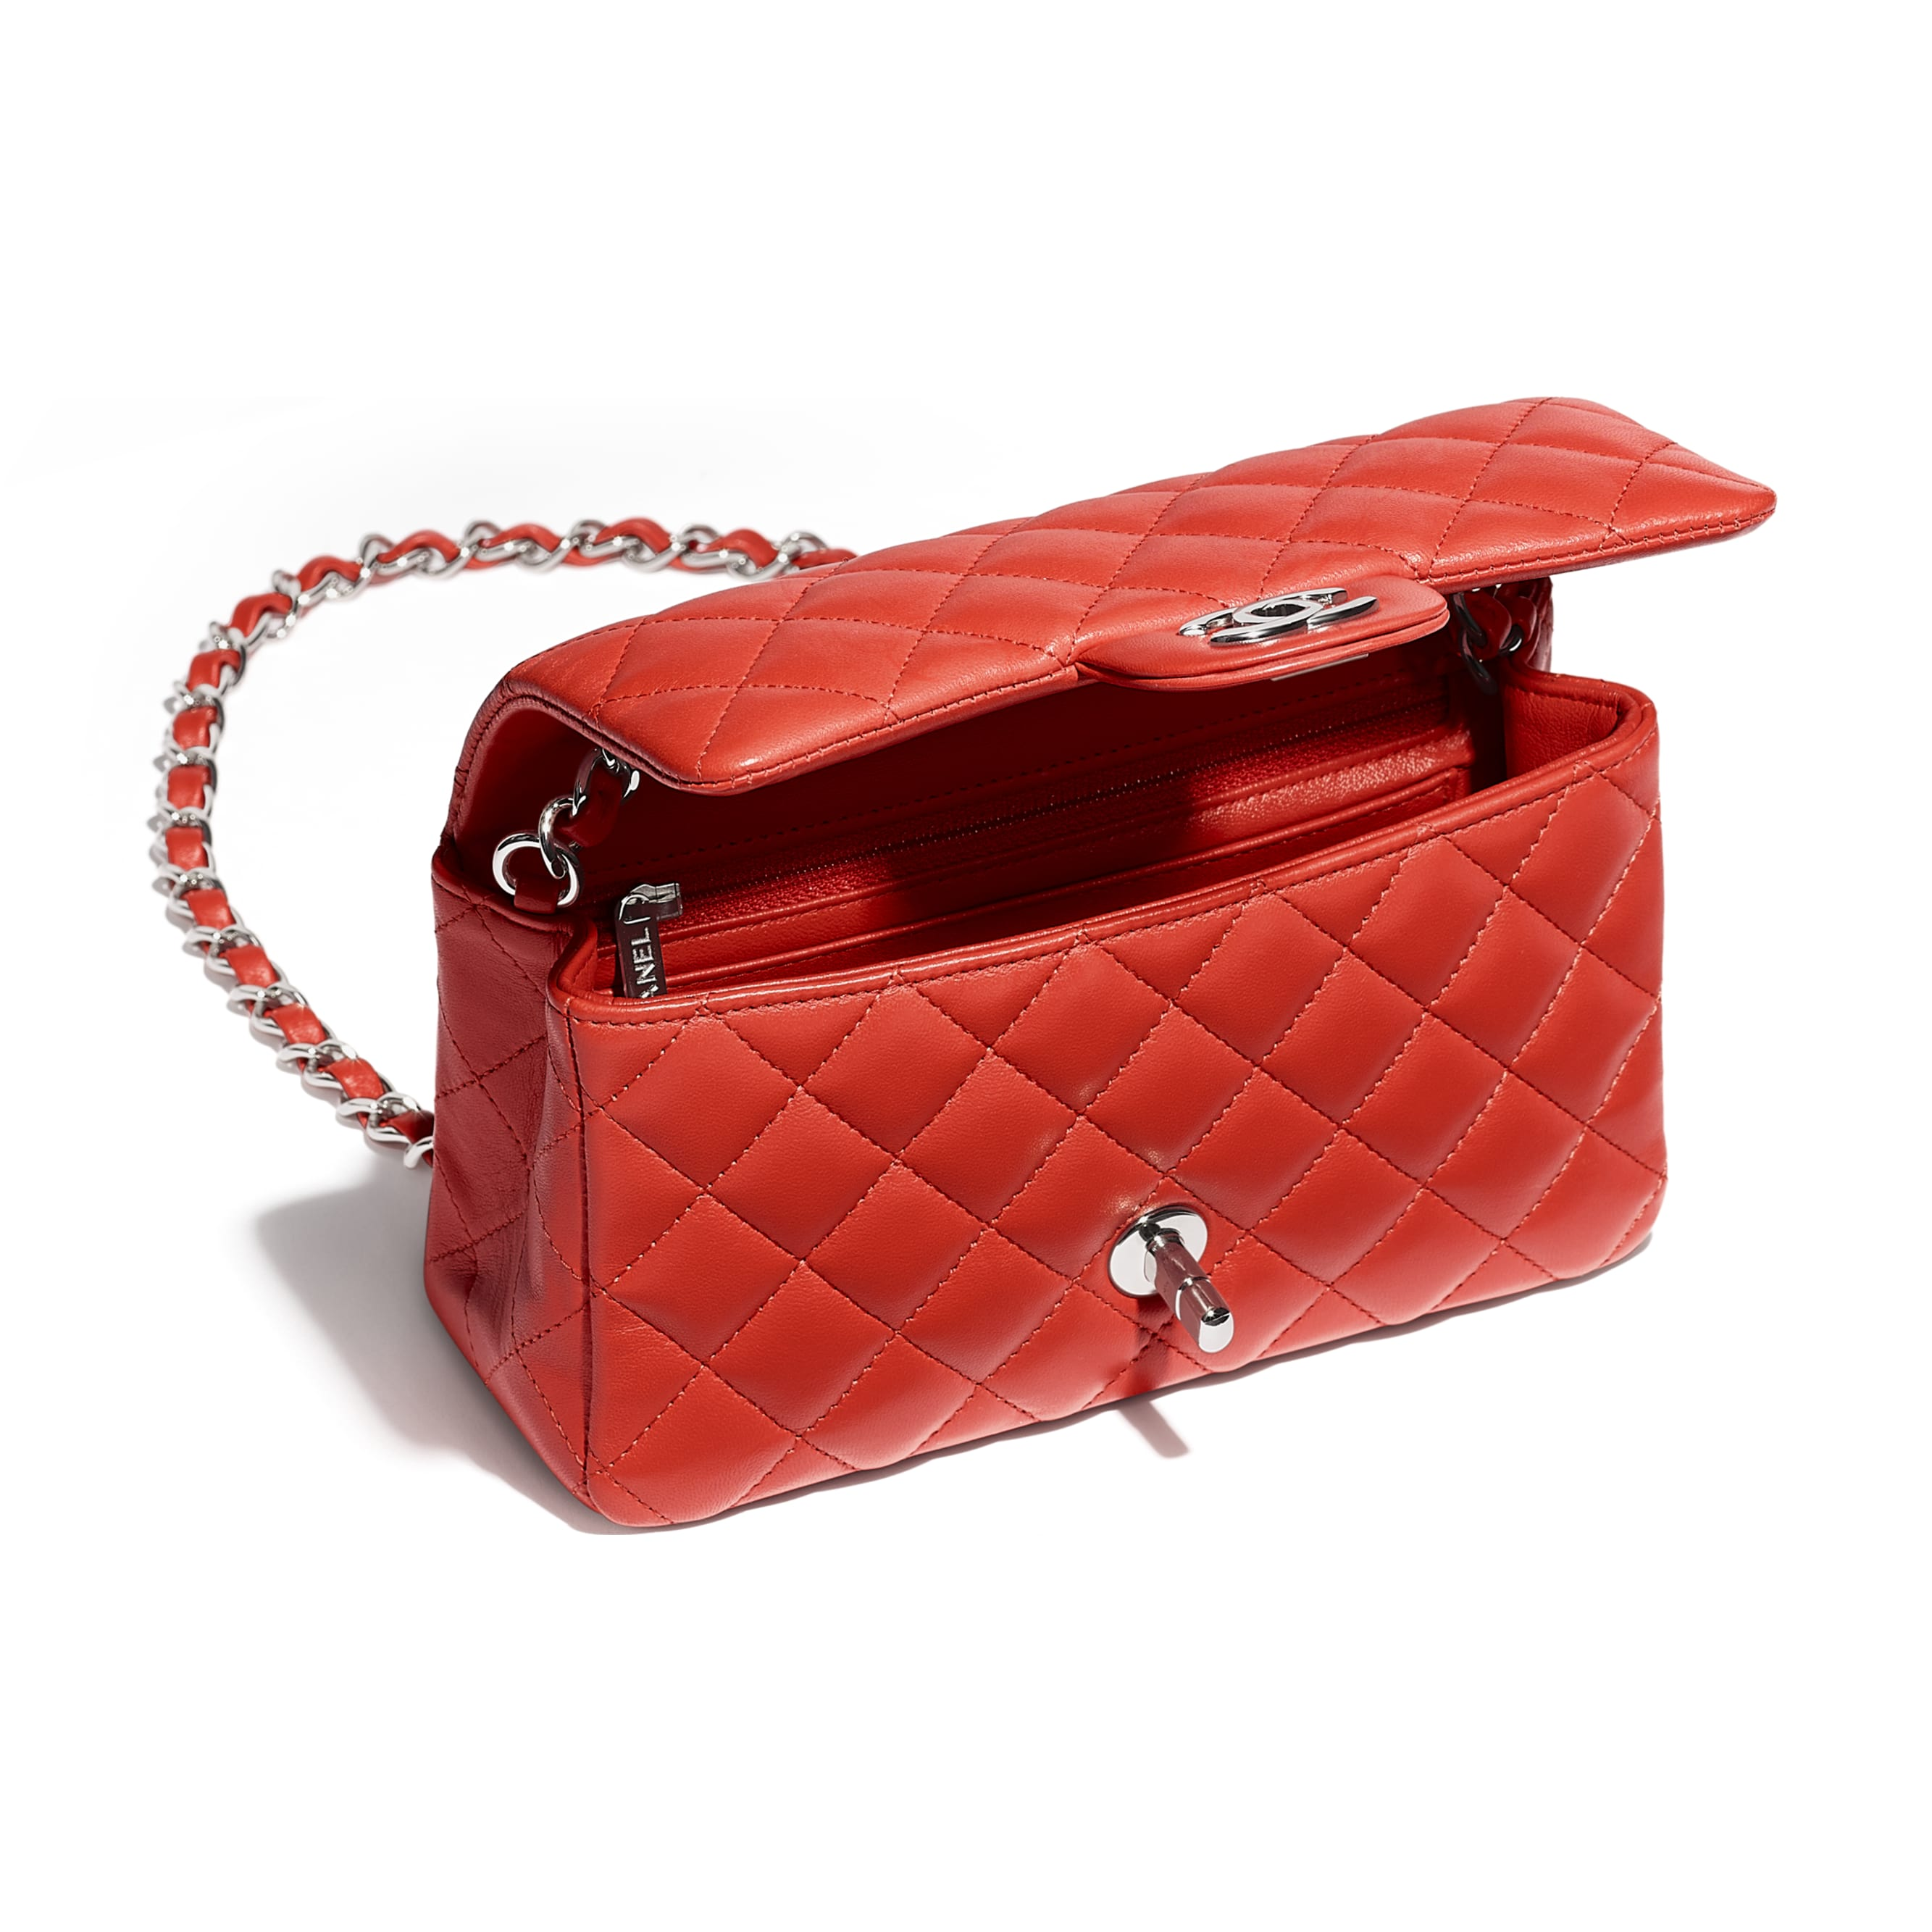 10 Iconic Chanel Bags Worth the Investment - Brands Blogger 18064c463e2a3